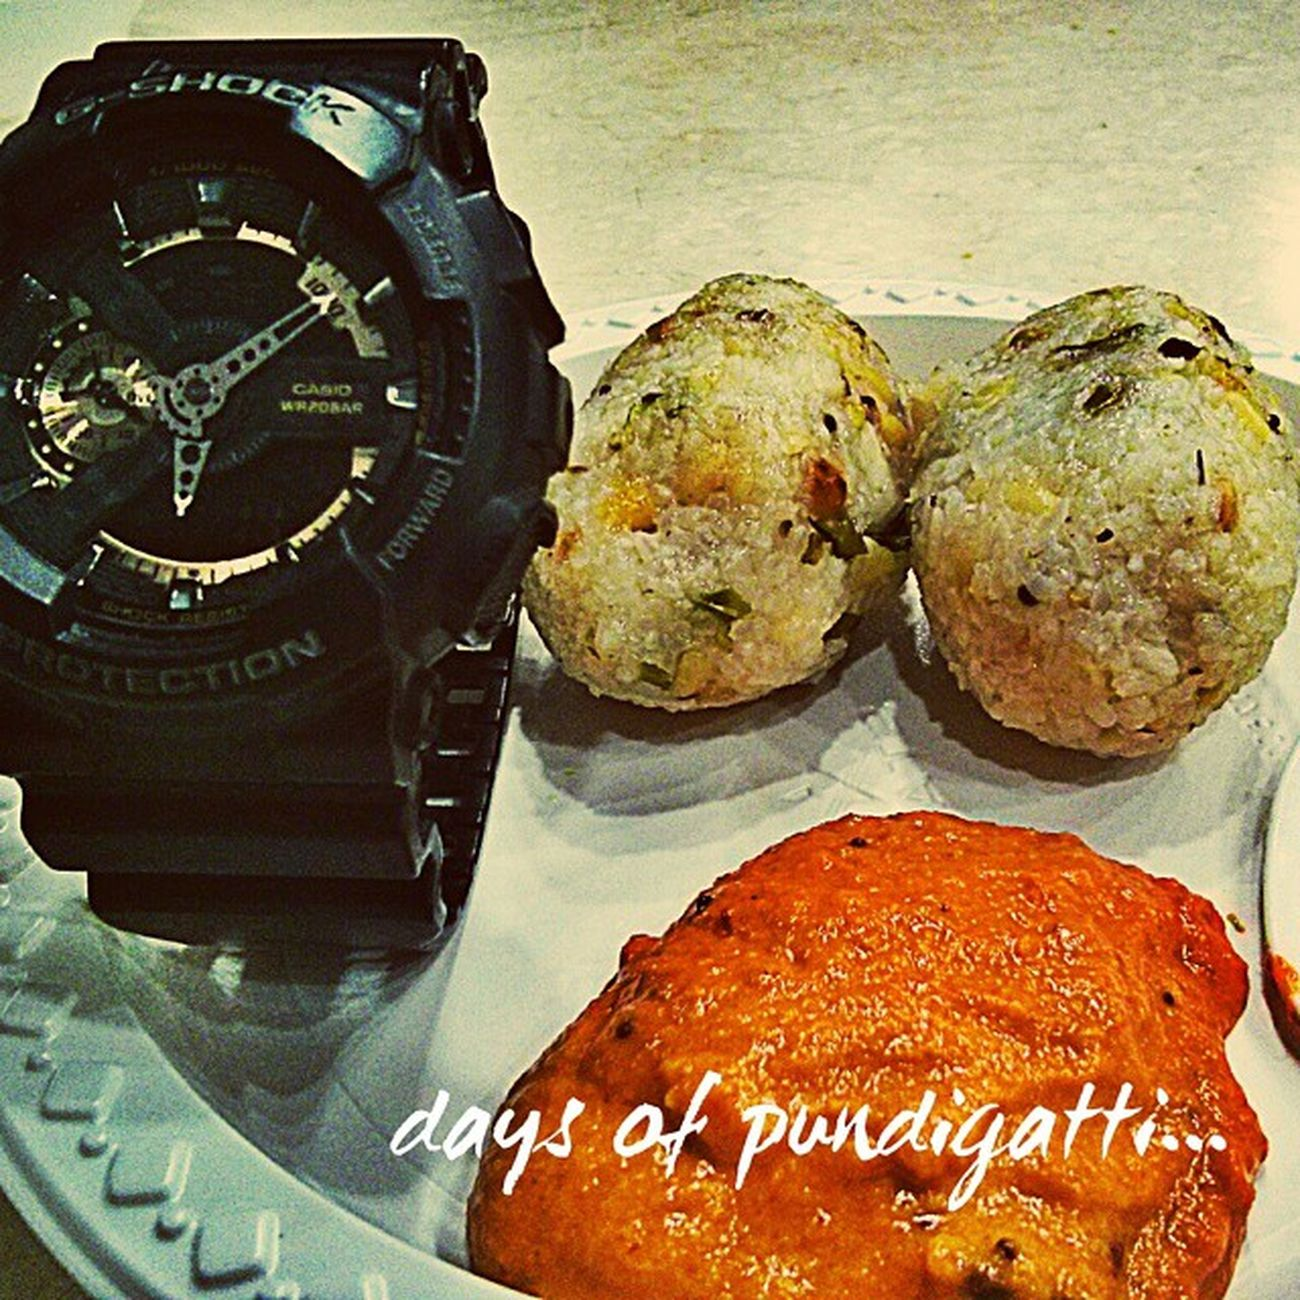 Pundigatti.... Spicy dish made of rice. One of my favorite!@a2b A2b Food Foodie Kannada Pondicherry Tastebuds Gshockwatch Gshock Watchesofinstagram Watchoftheday Watchoftheday Weekends Saturdays Wearethebest Bestfriend